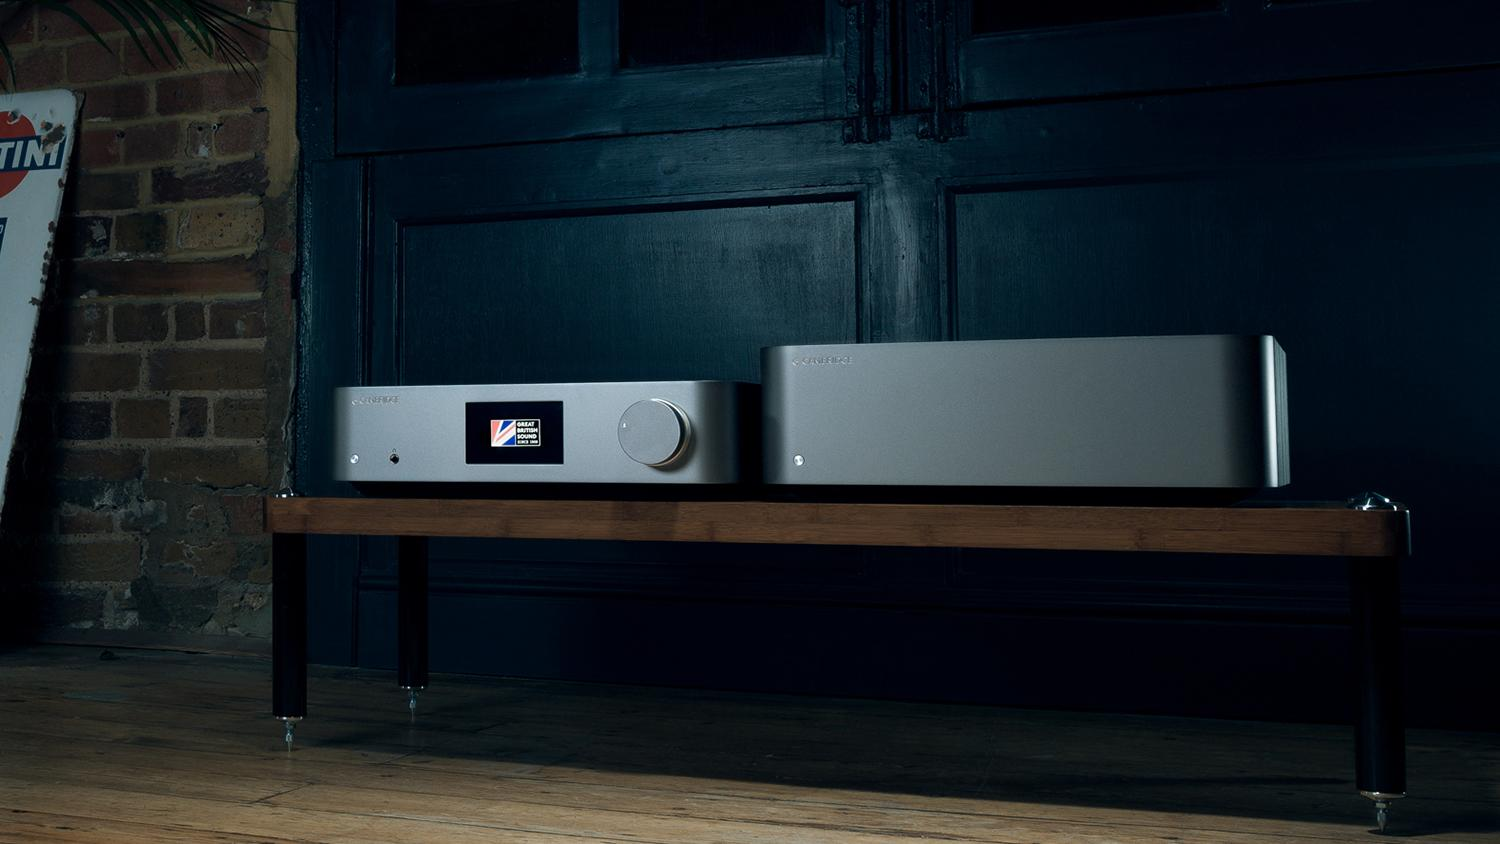 Edge W Power Amplifier and Edge NQ Network Player side-by-side